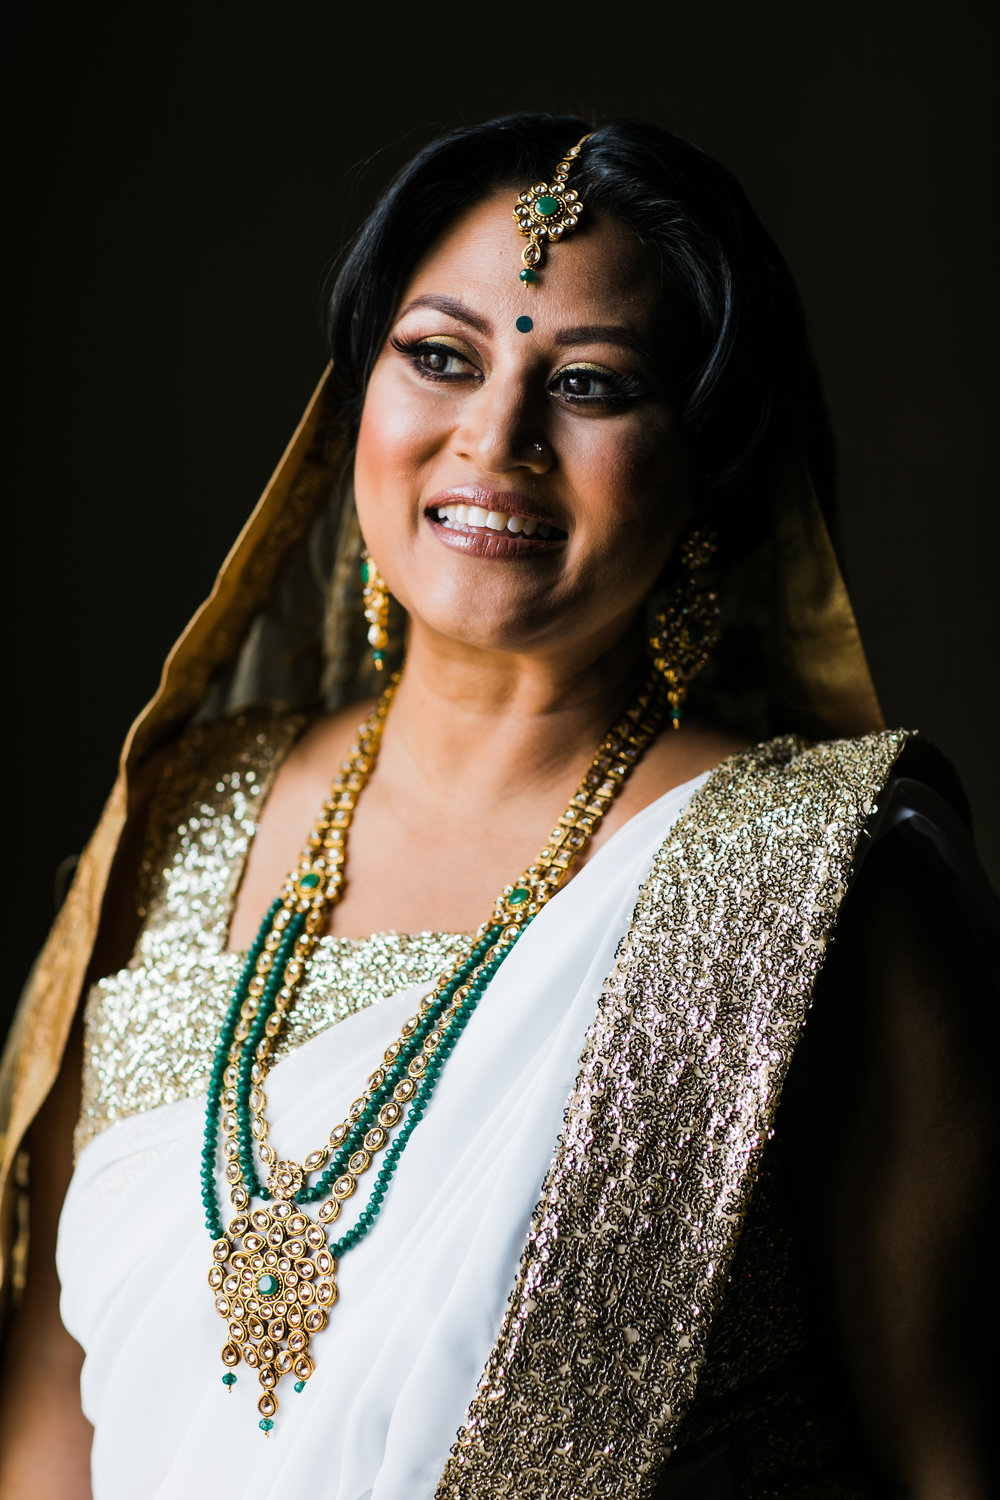 Indian wedding - Wedding photographer - Dallas Photographer - South Asian Wedding -  elizalde photography-12.jpg